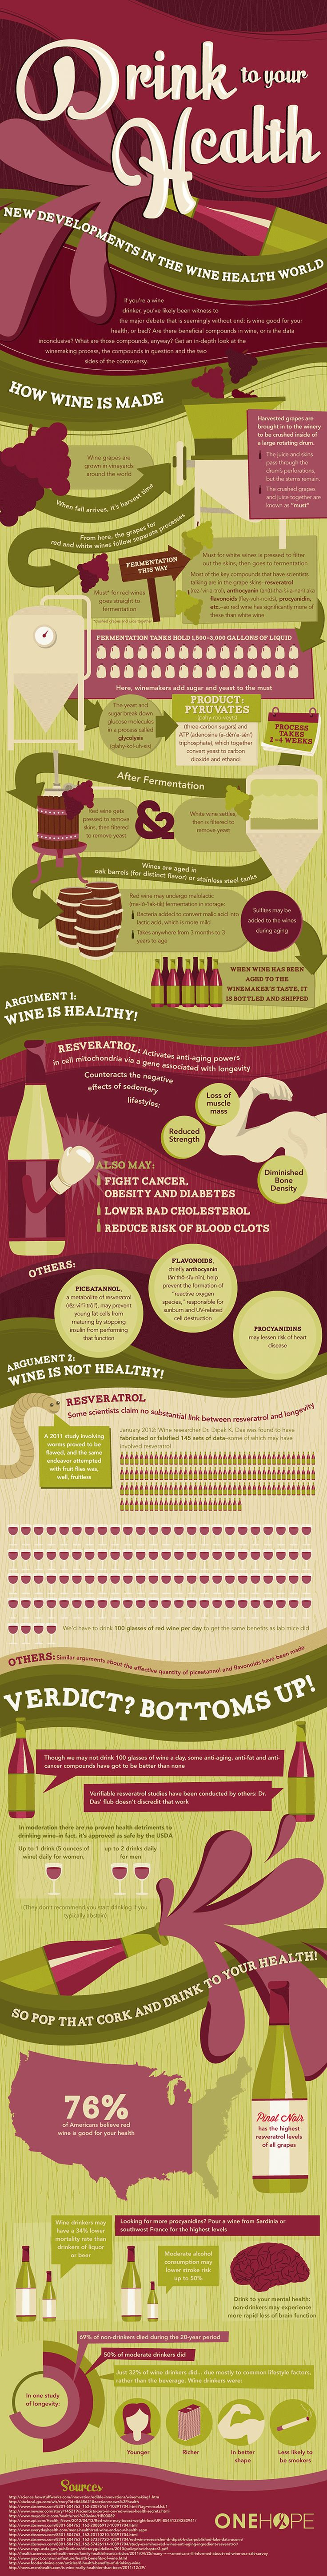 Drink to Your Health #Wine #infographic